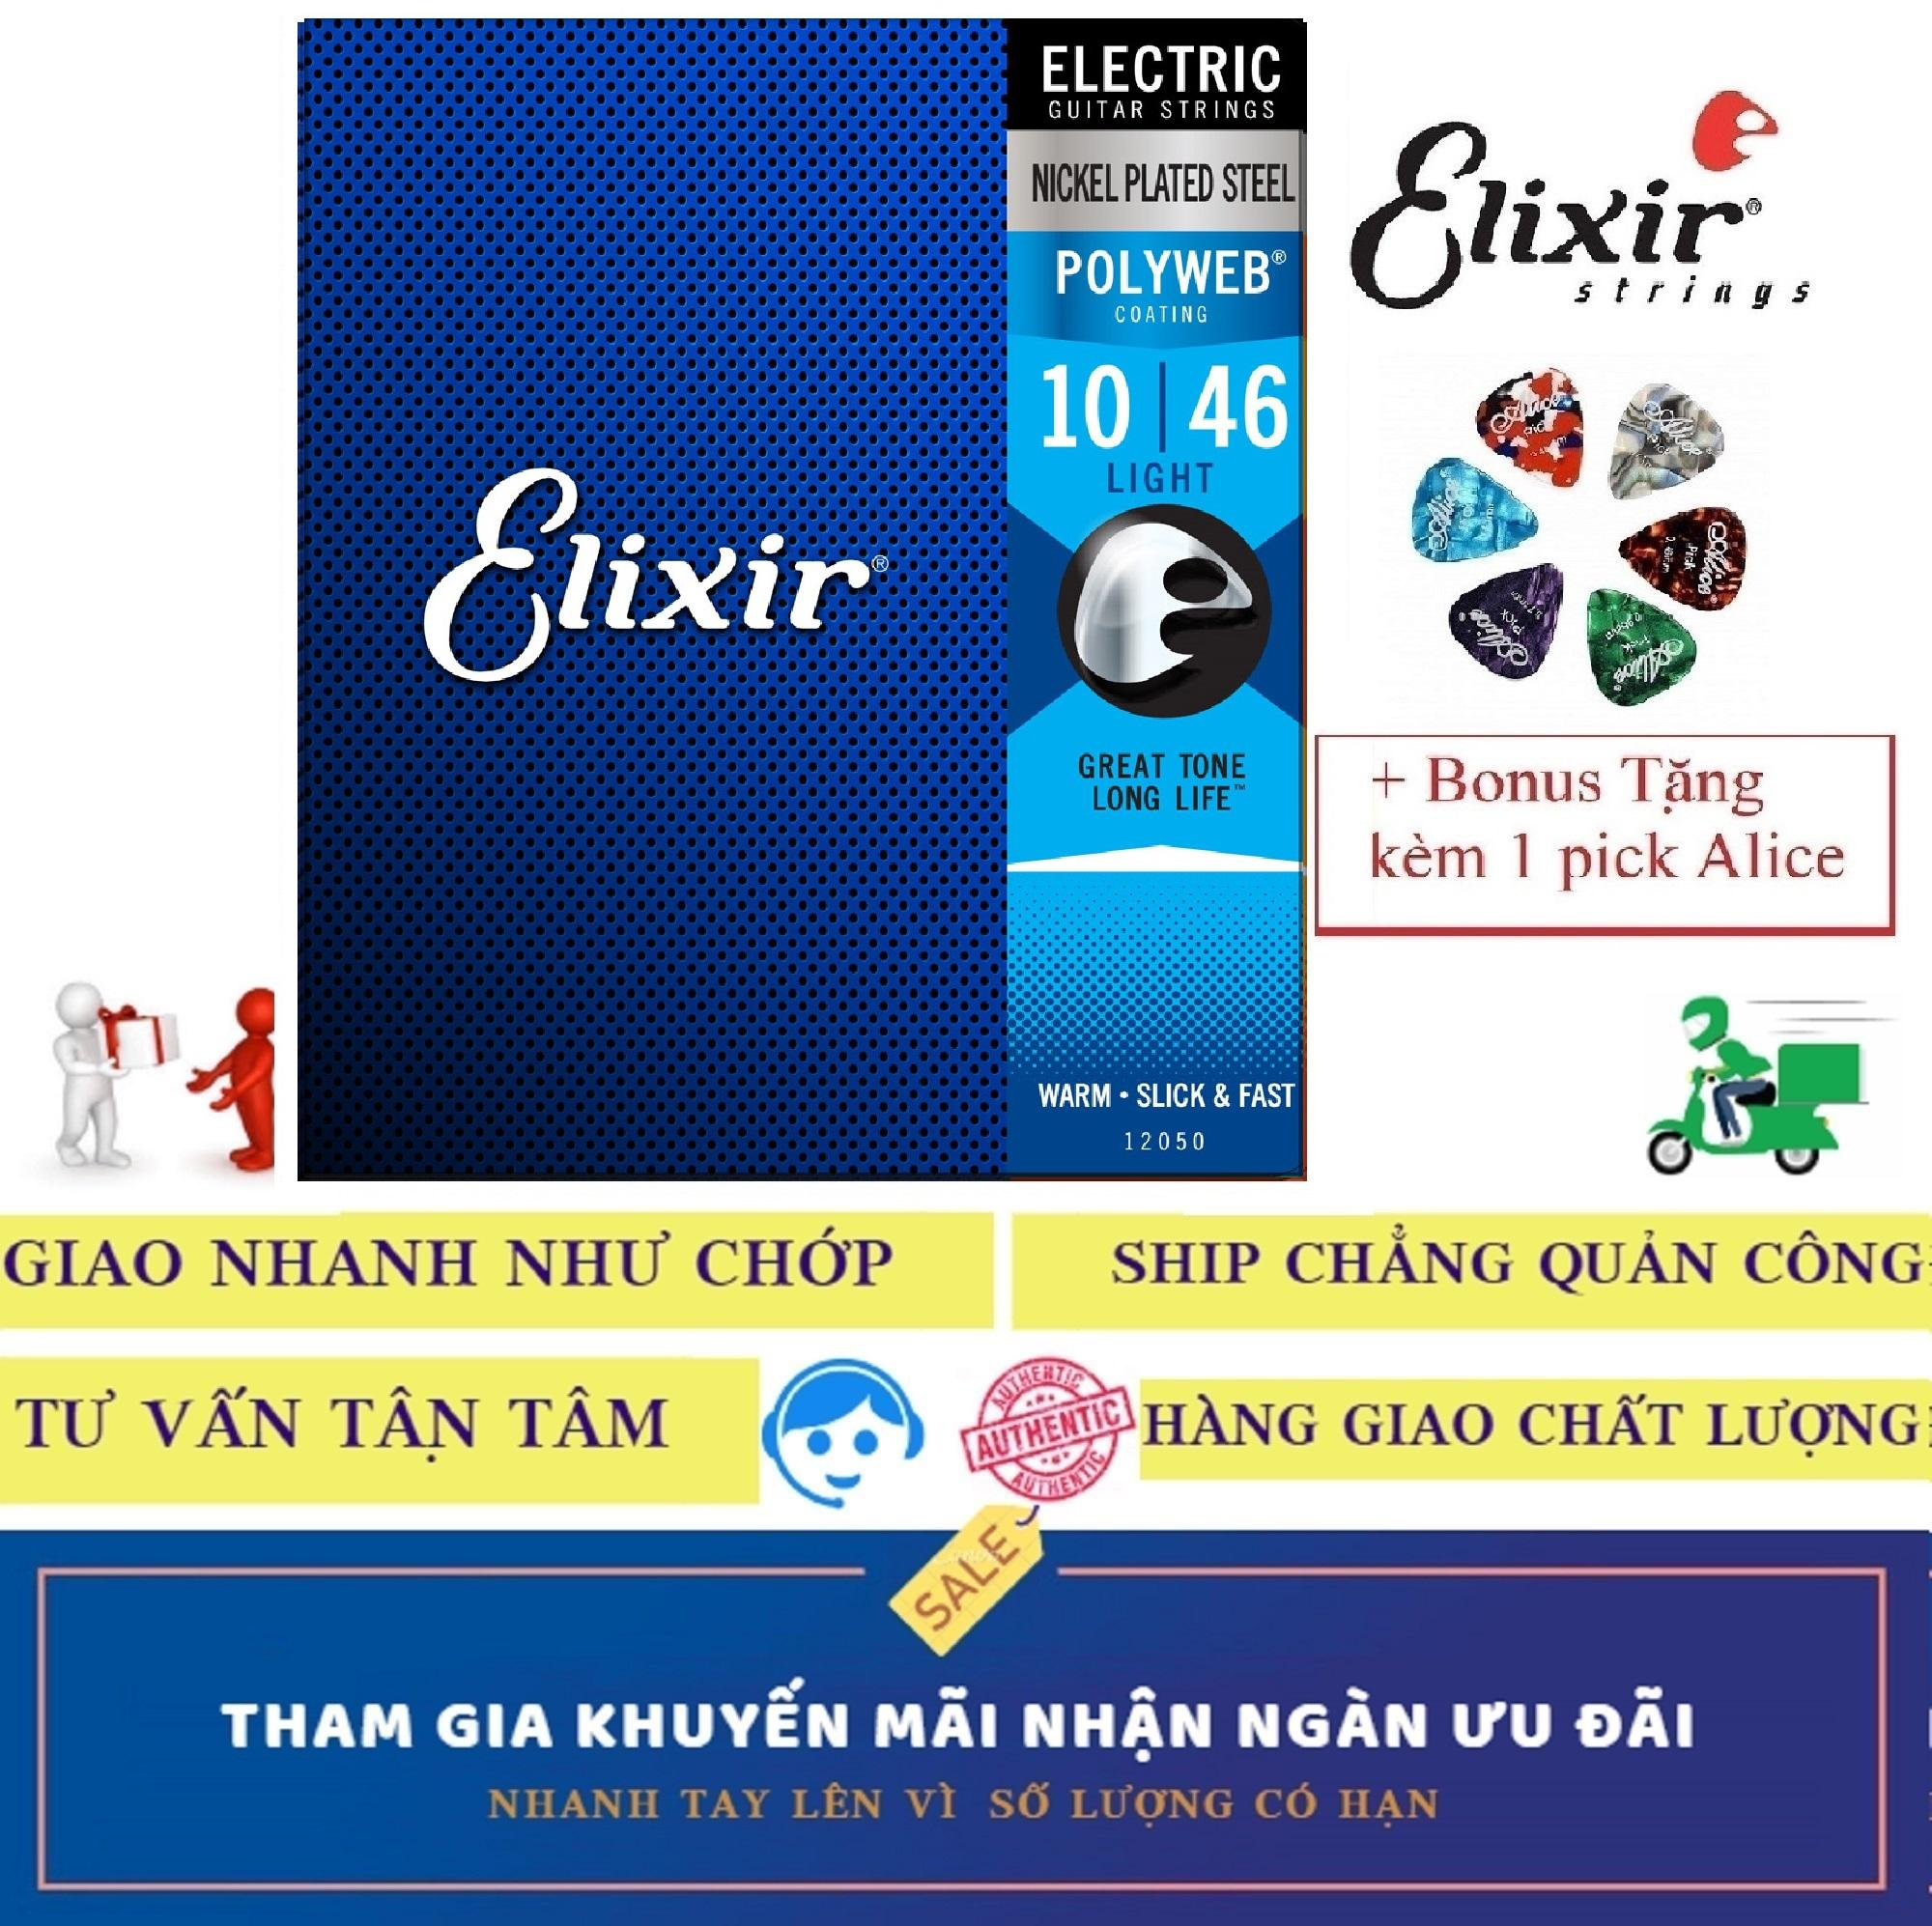 Bộ Dây Đàn Elixir cao cấp 12050 (Cỡ 10 - Light) Electric Guitar điện Nickel Plated Steel With POLYWEB COATING Strings